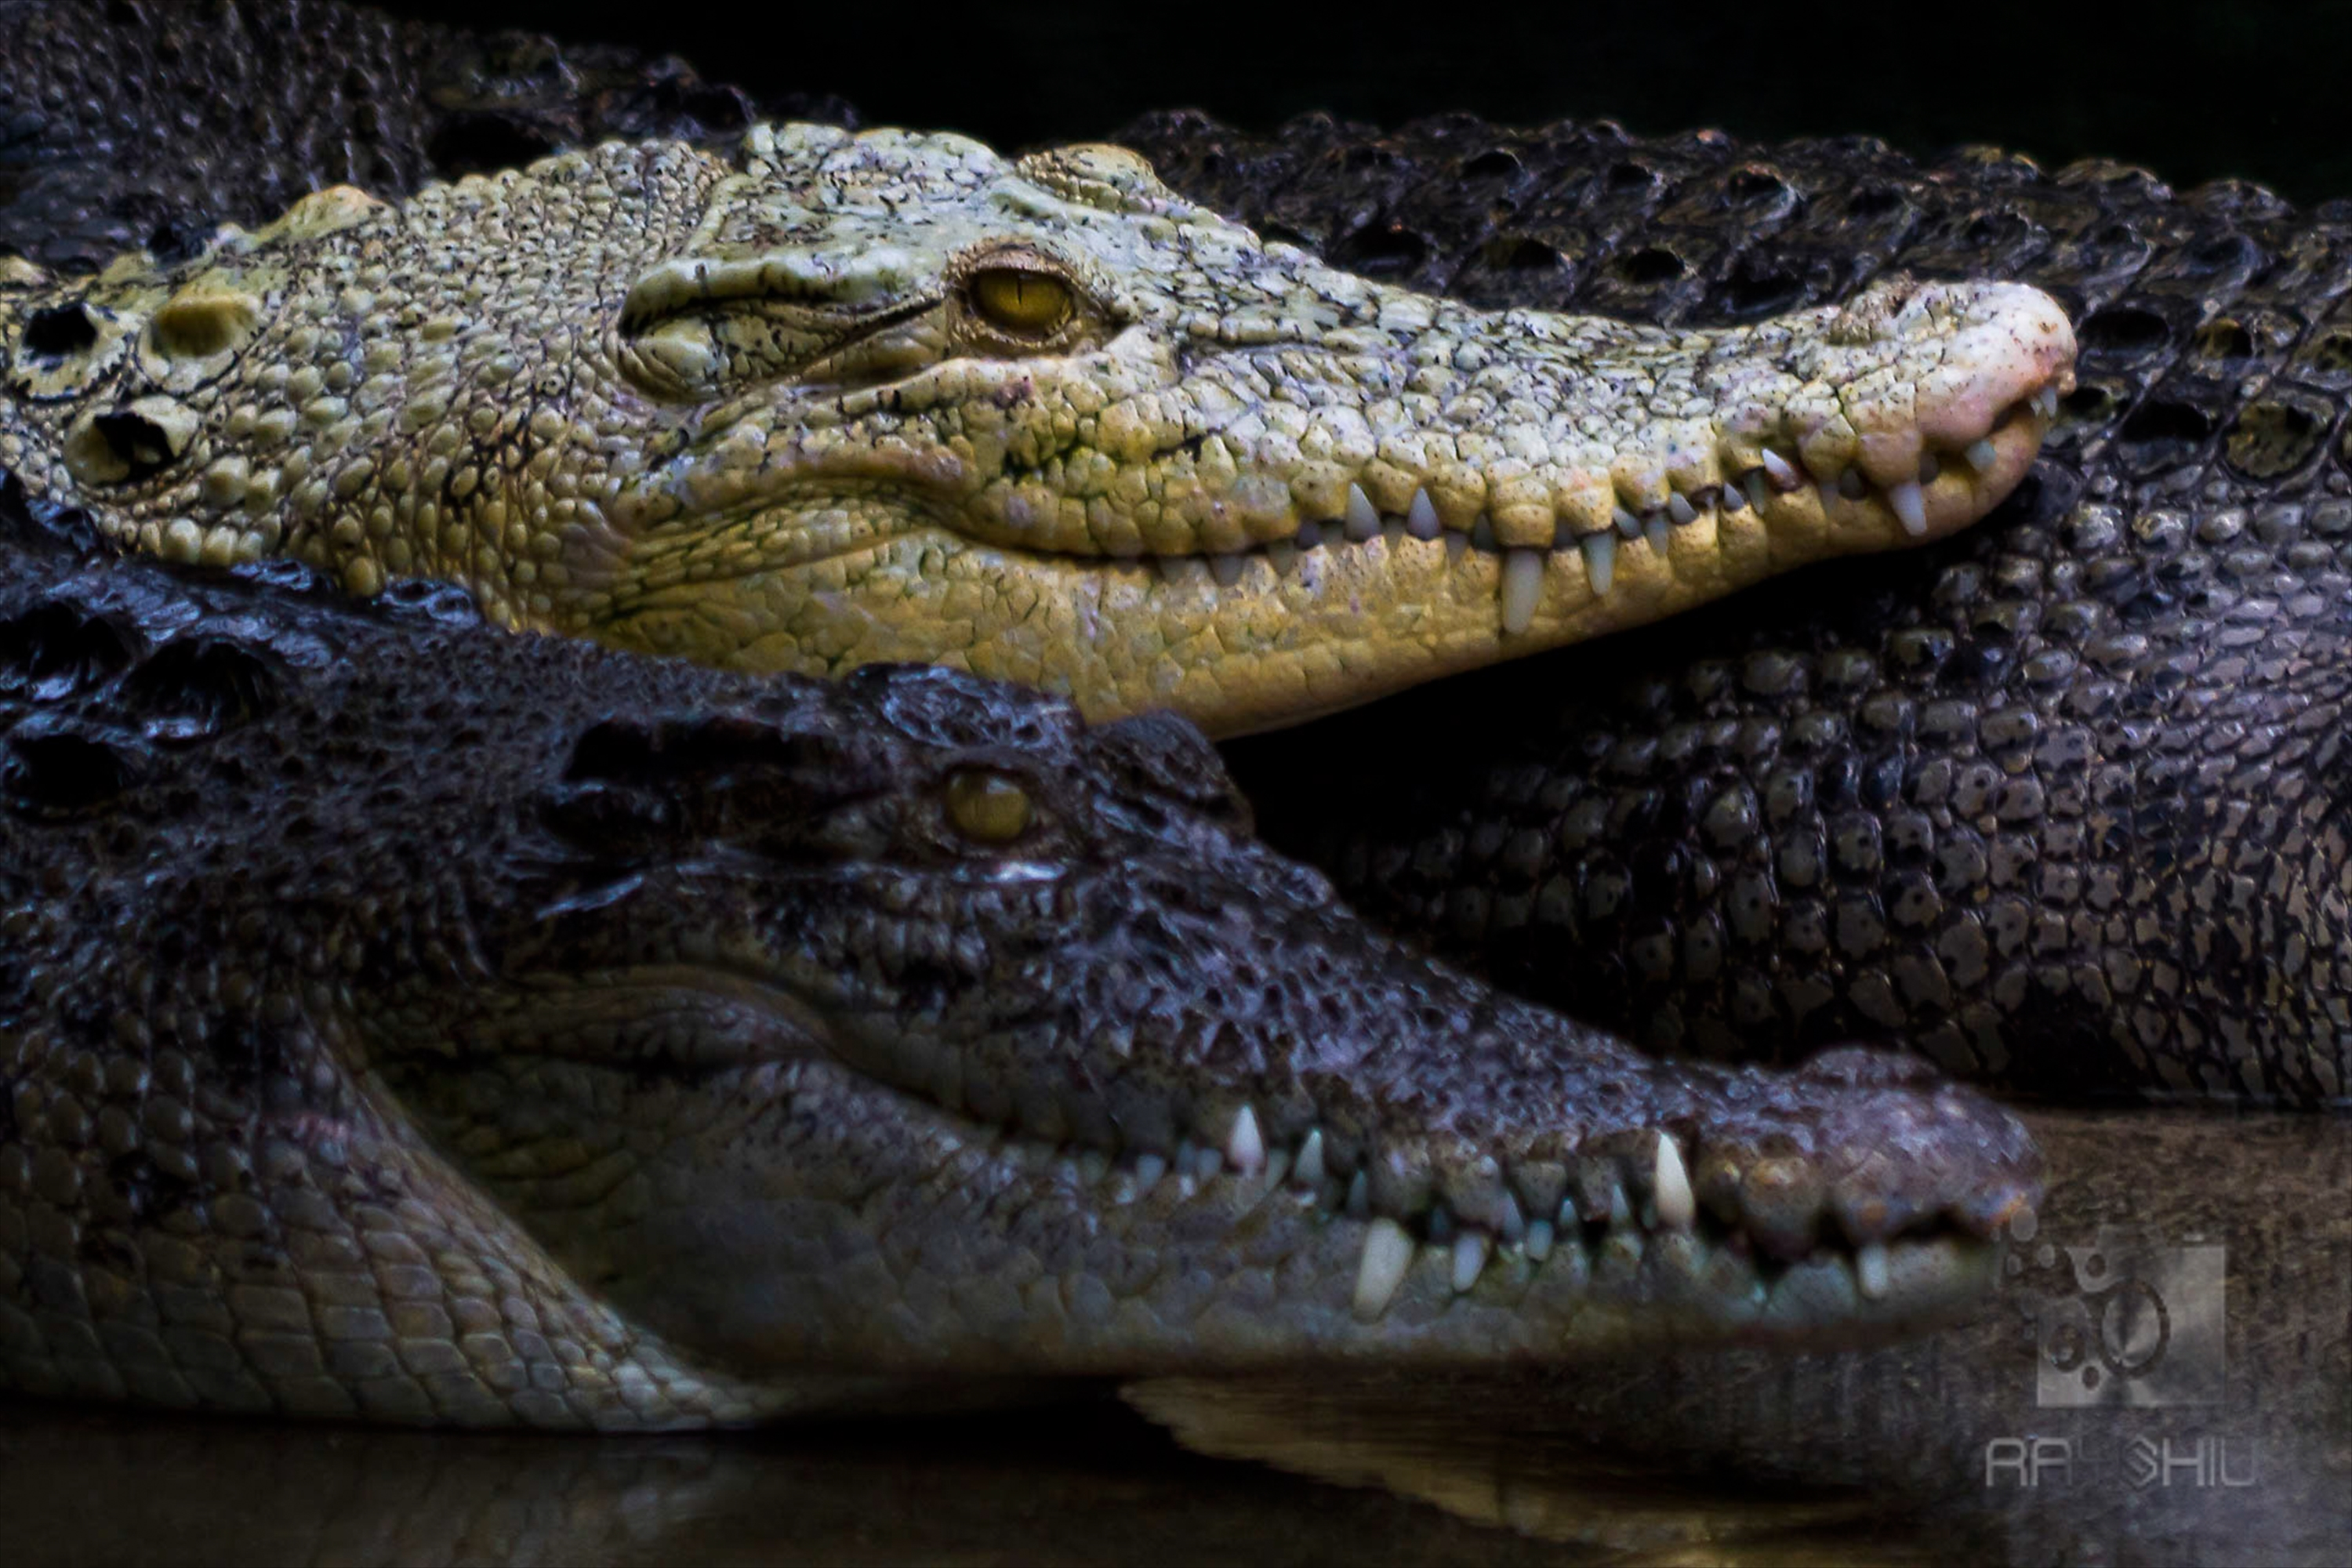 The beatuy of nature, contrasting crocodiles.